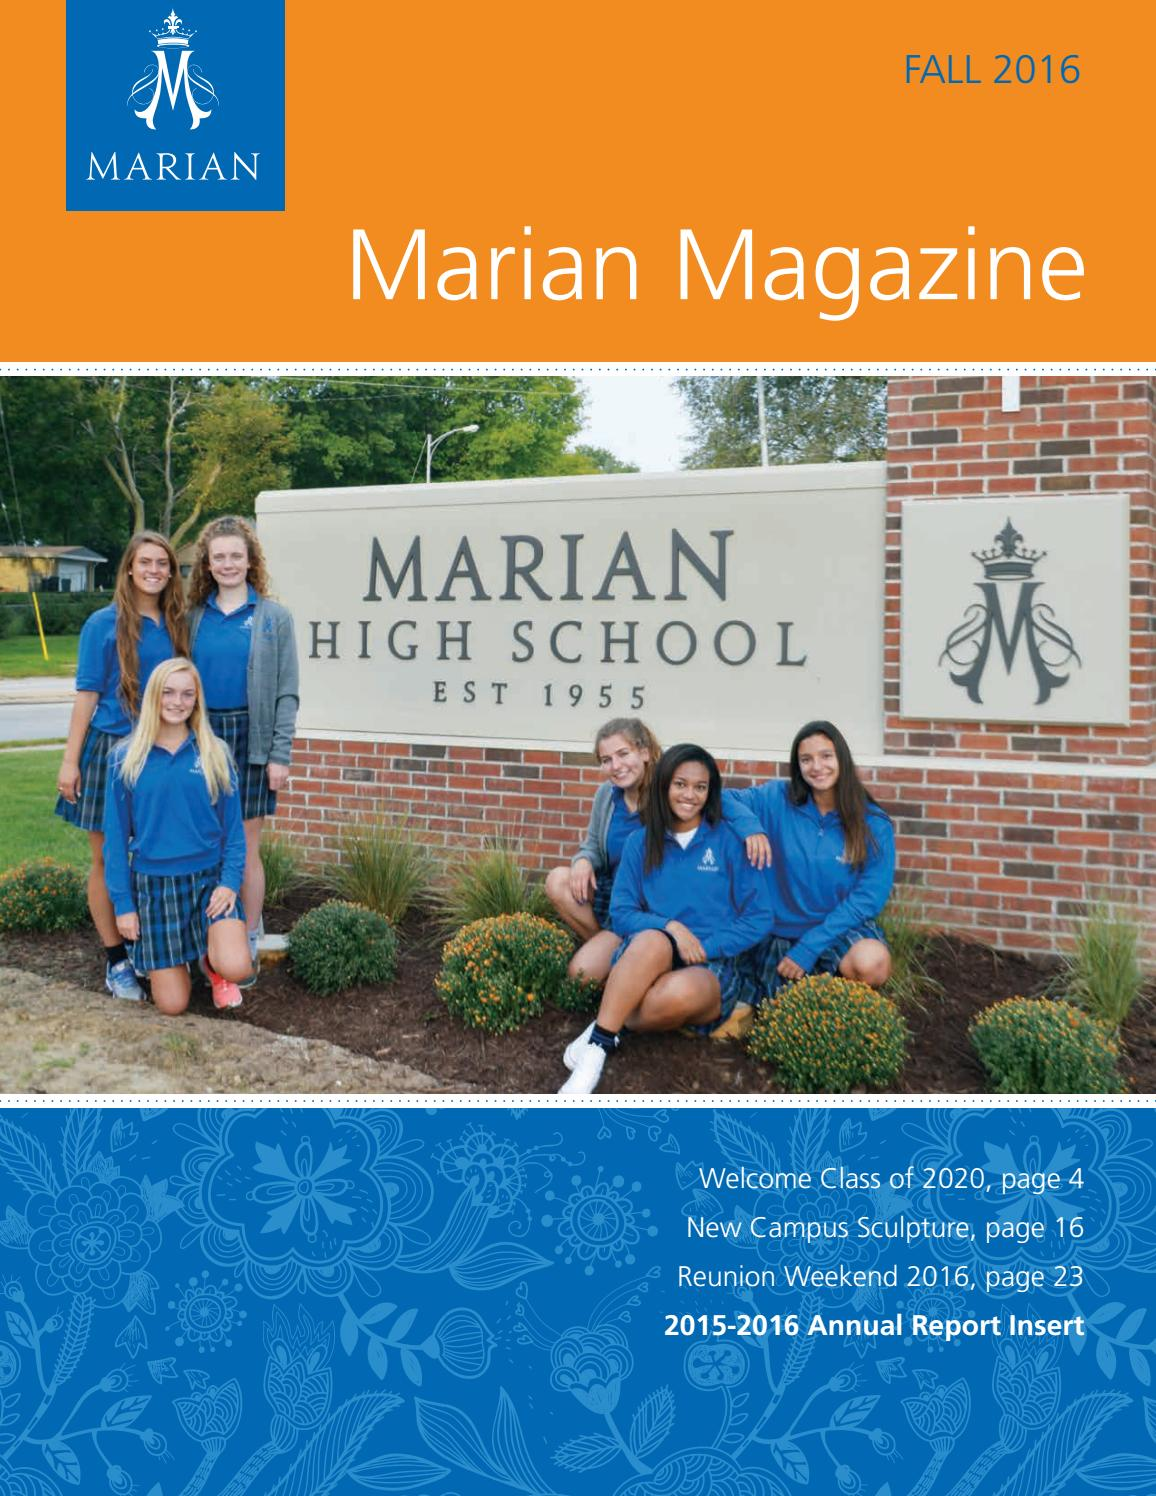 Marian Magazine Fall 2016 By Marian High School Issuu